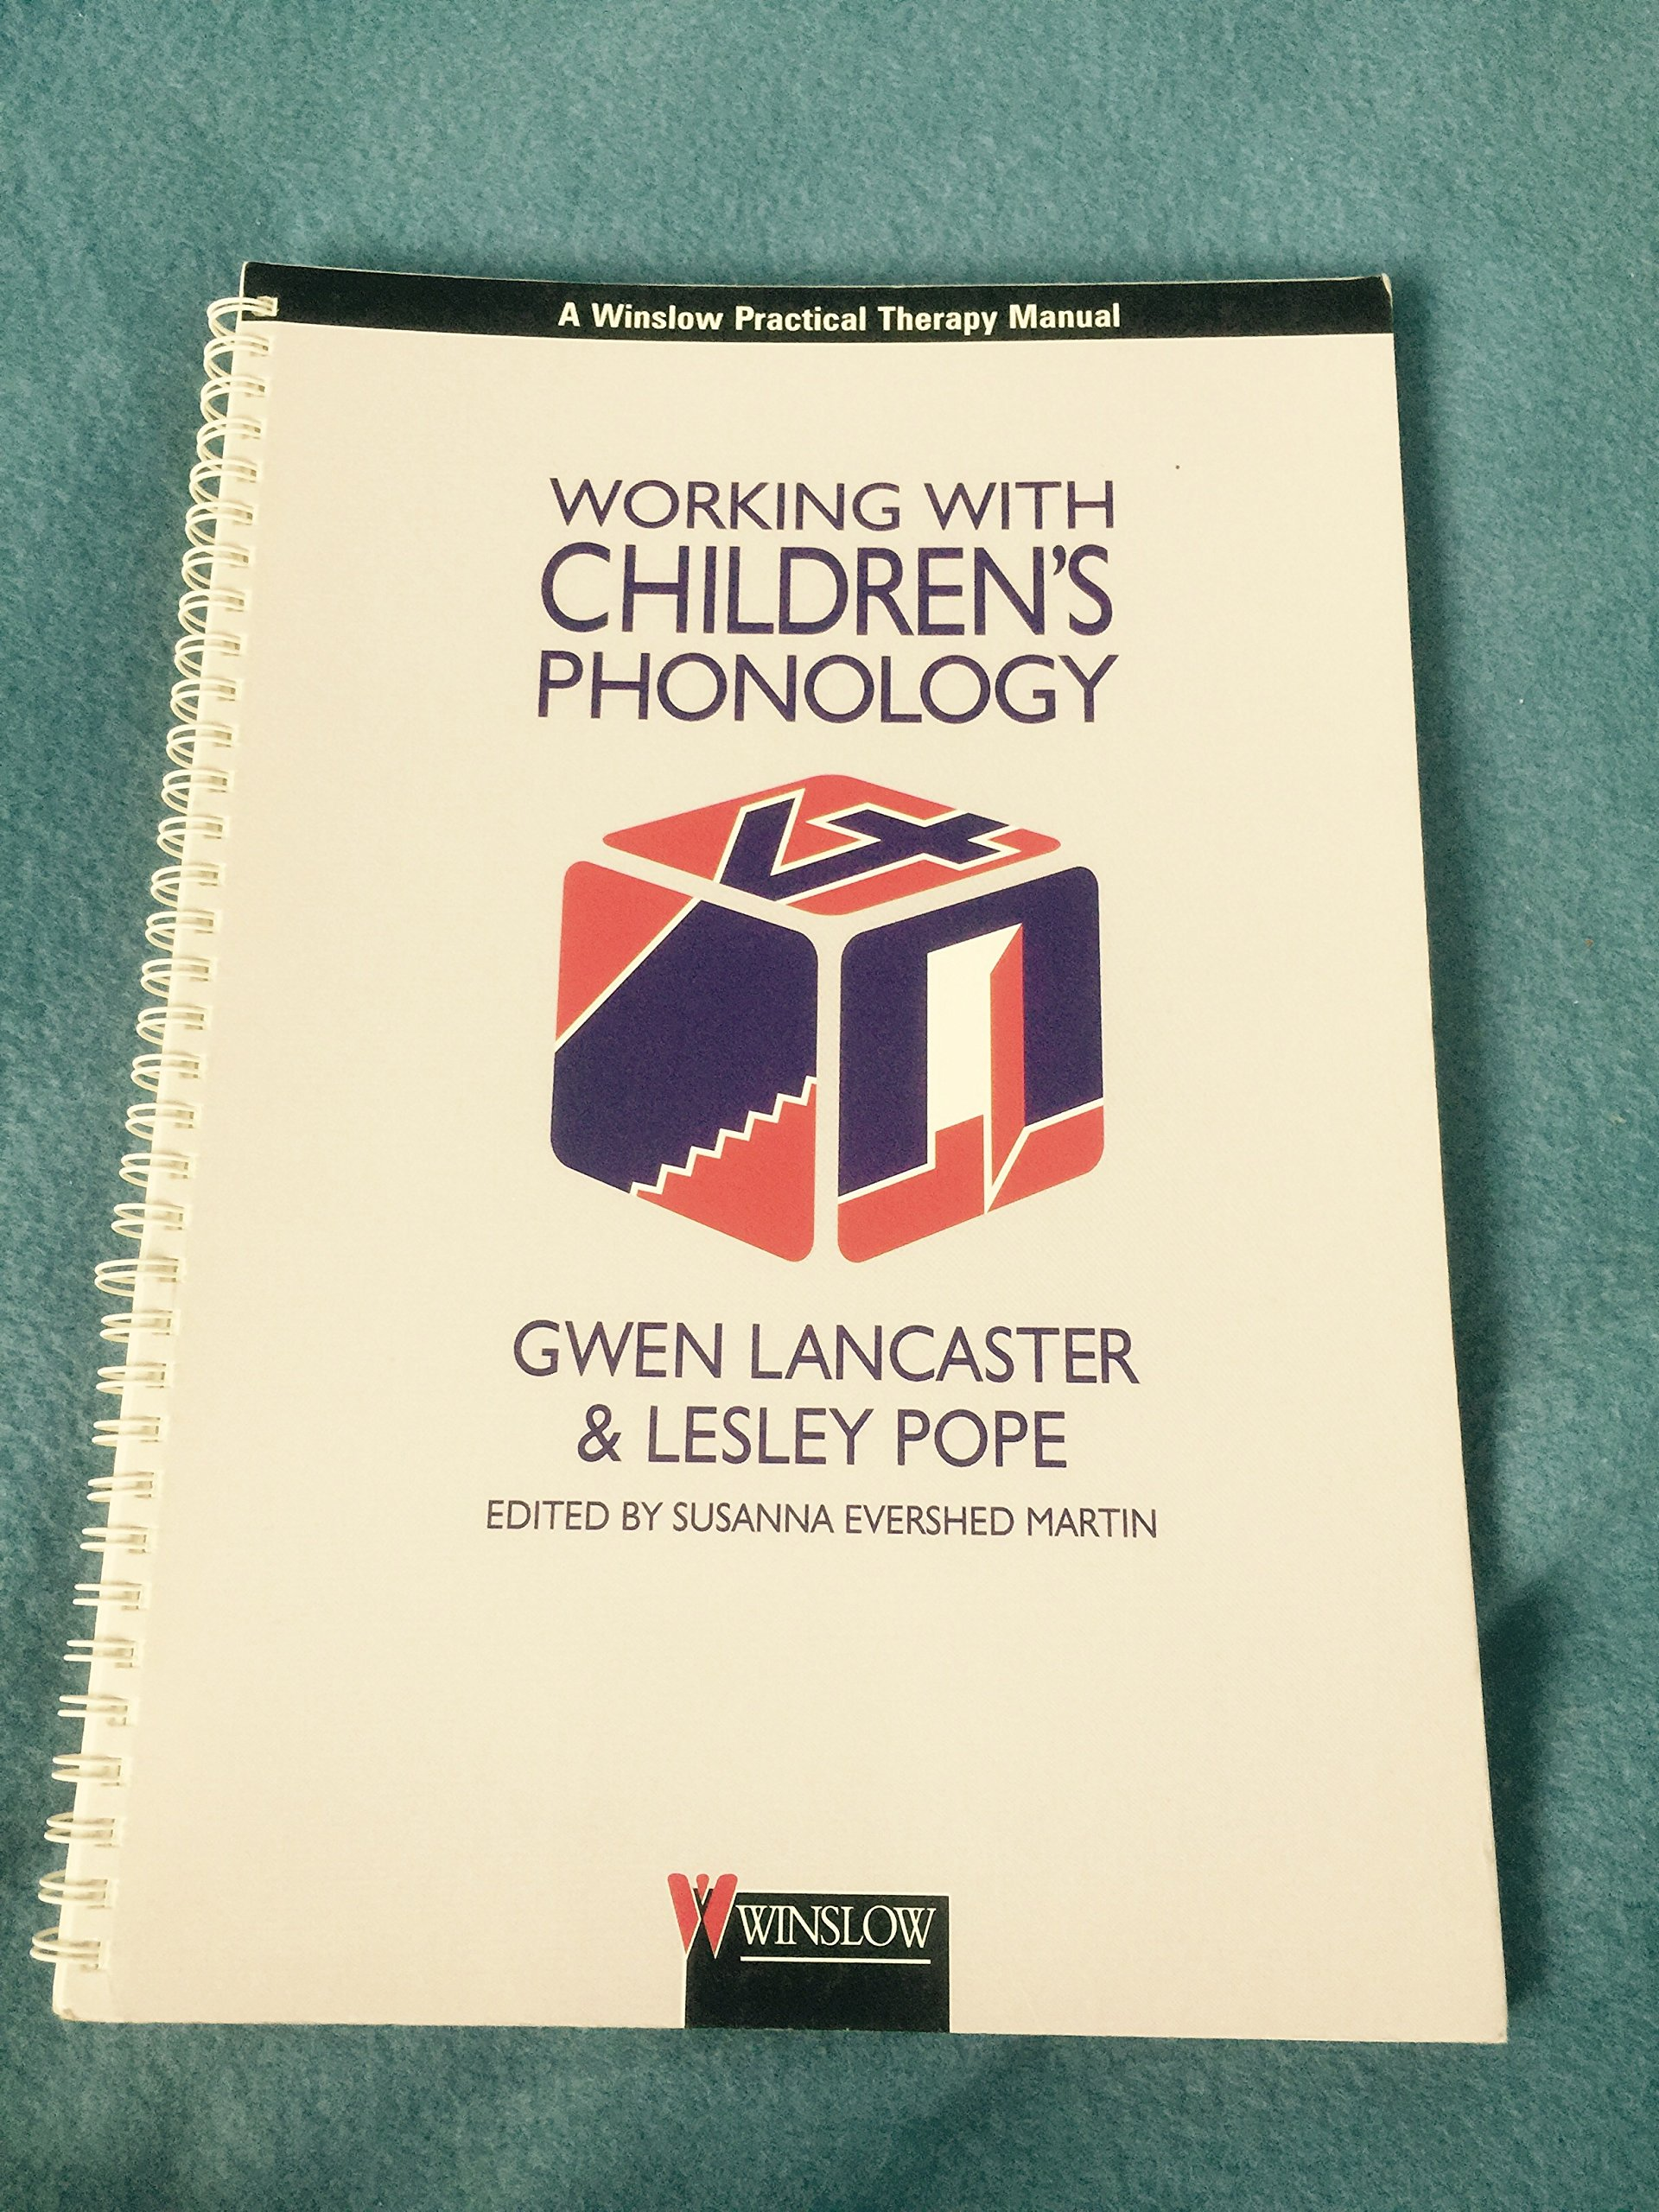 Working with Children's Phonology (Working with Series): Gwen Lancaster,  Lesley Pope, Susanna Evershed Martin: 9780863880698: Amazon.com: Books